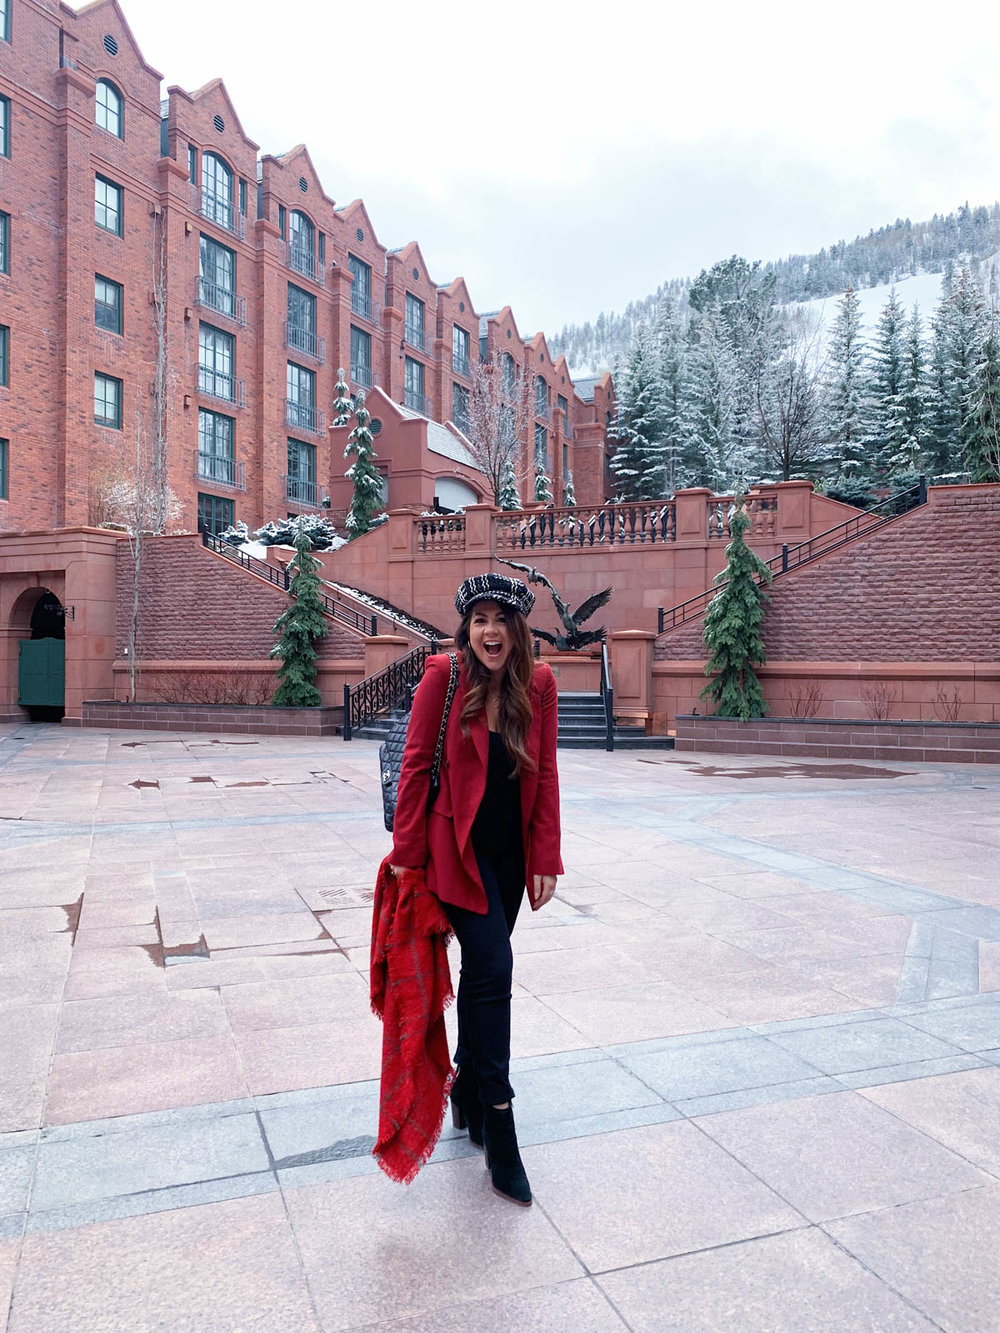 Aspen Colorado Hotels and Dining - Addie Bell_-12.jpg